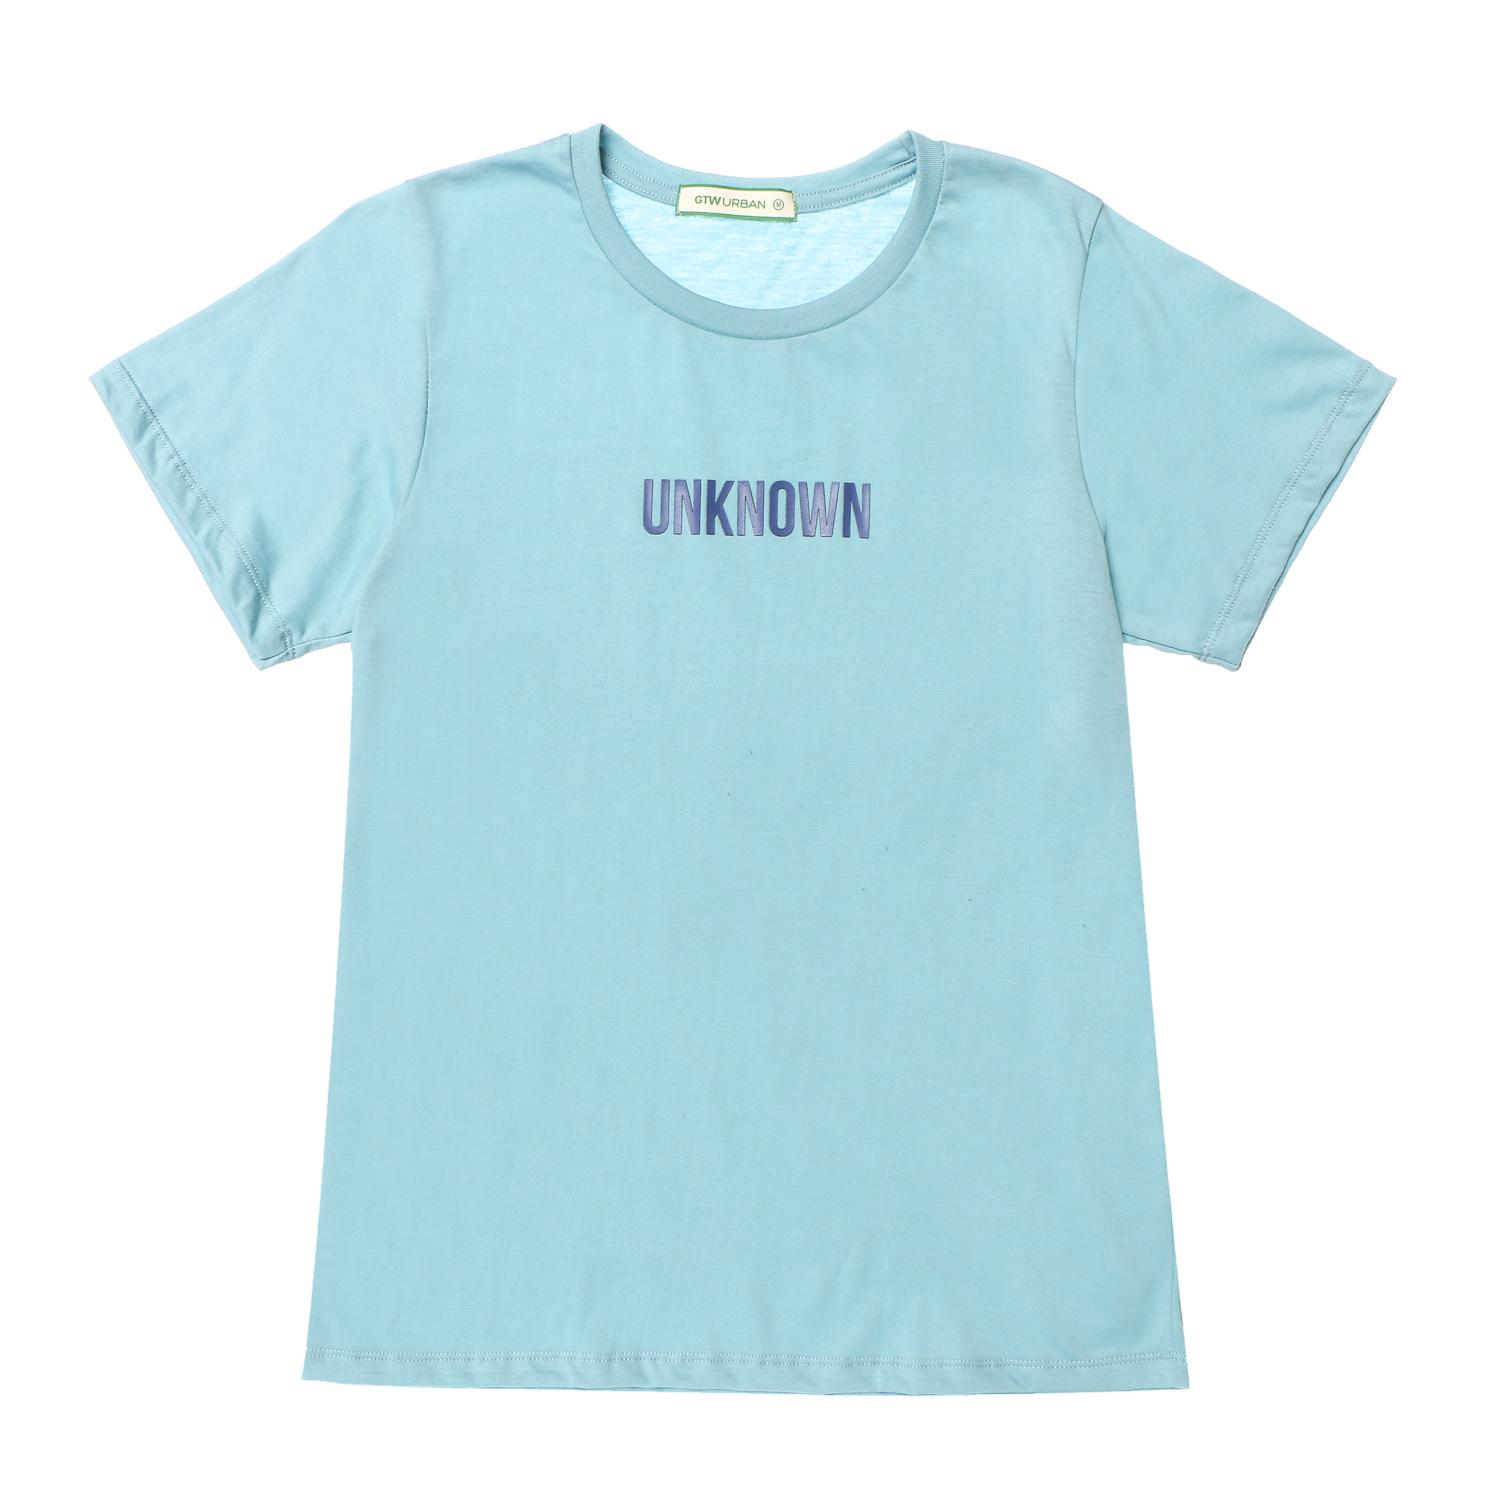 6a9ab6803 GTW Urban Philippines: GTW Urban price list - Sports Clothing for ...